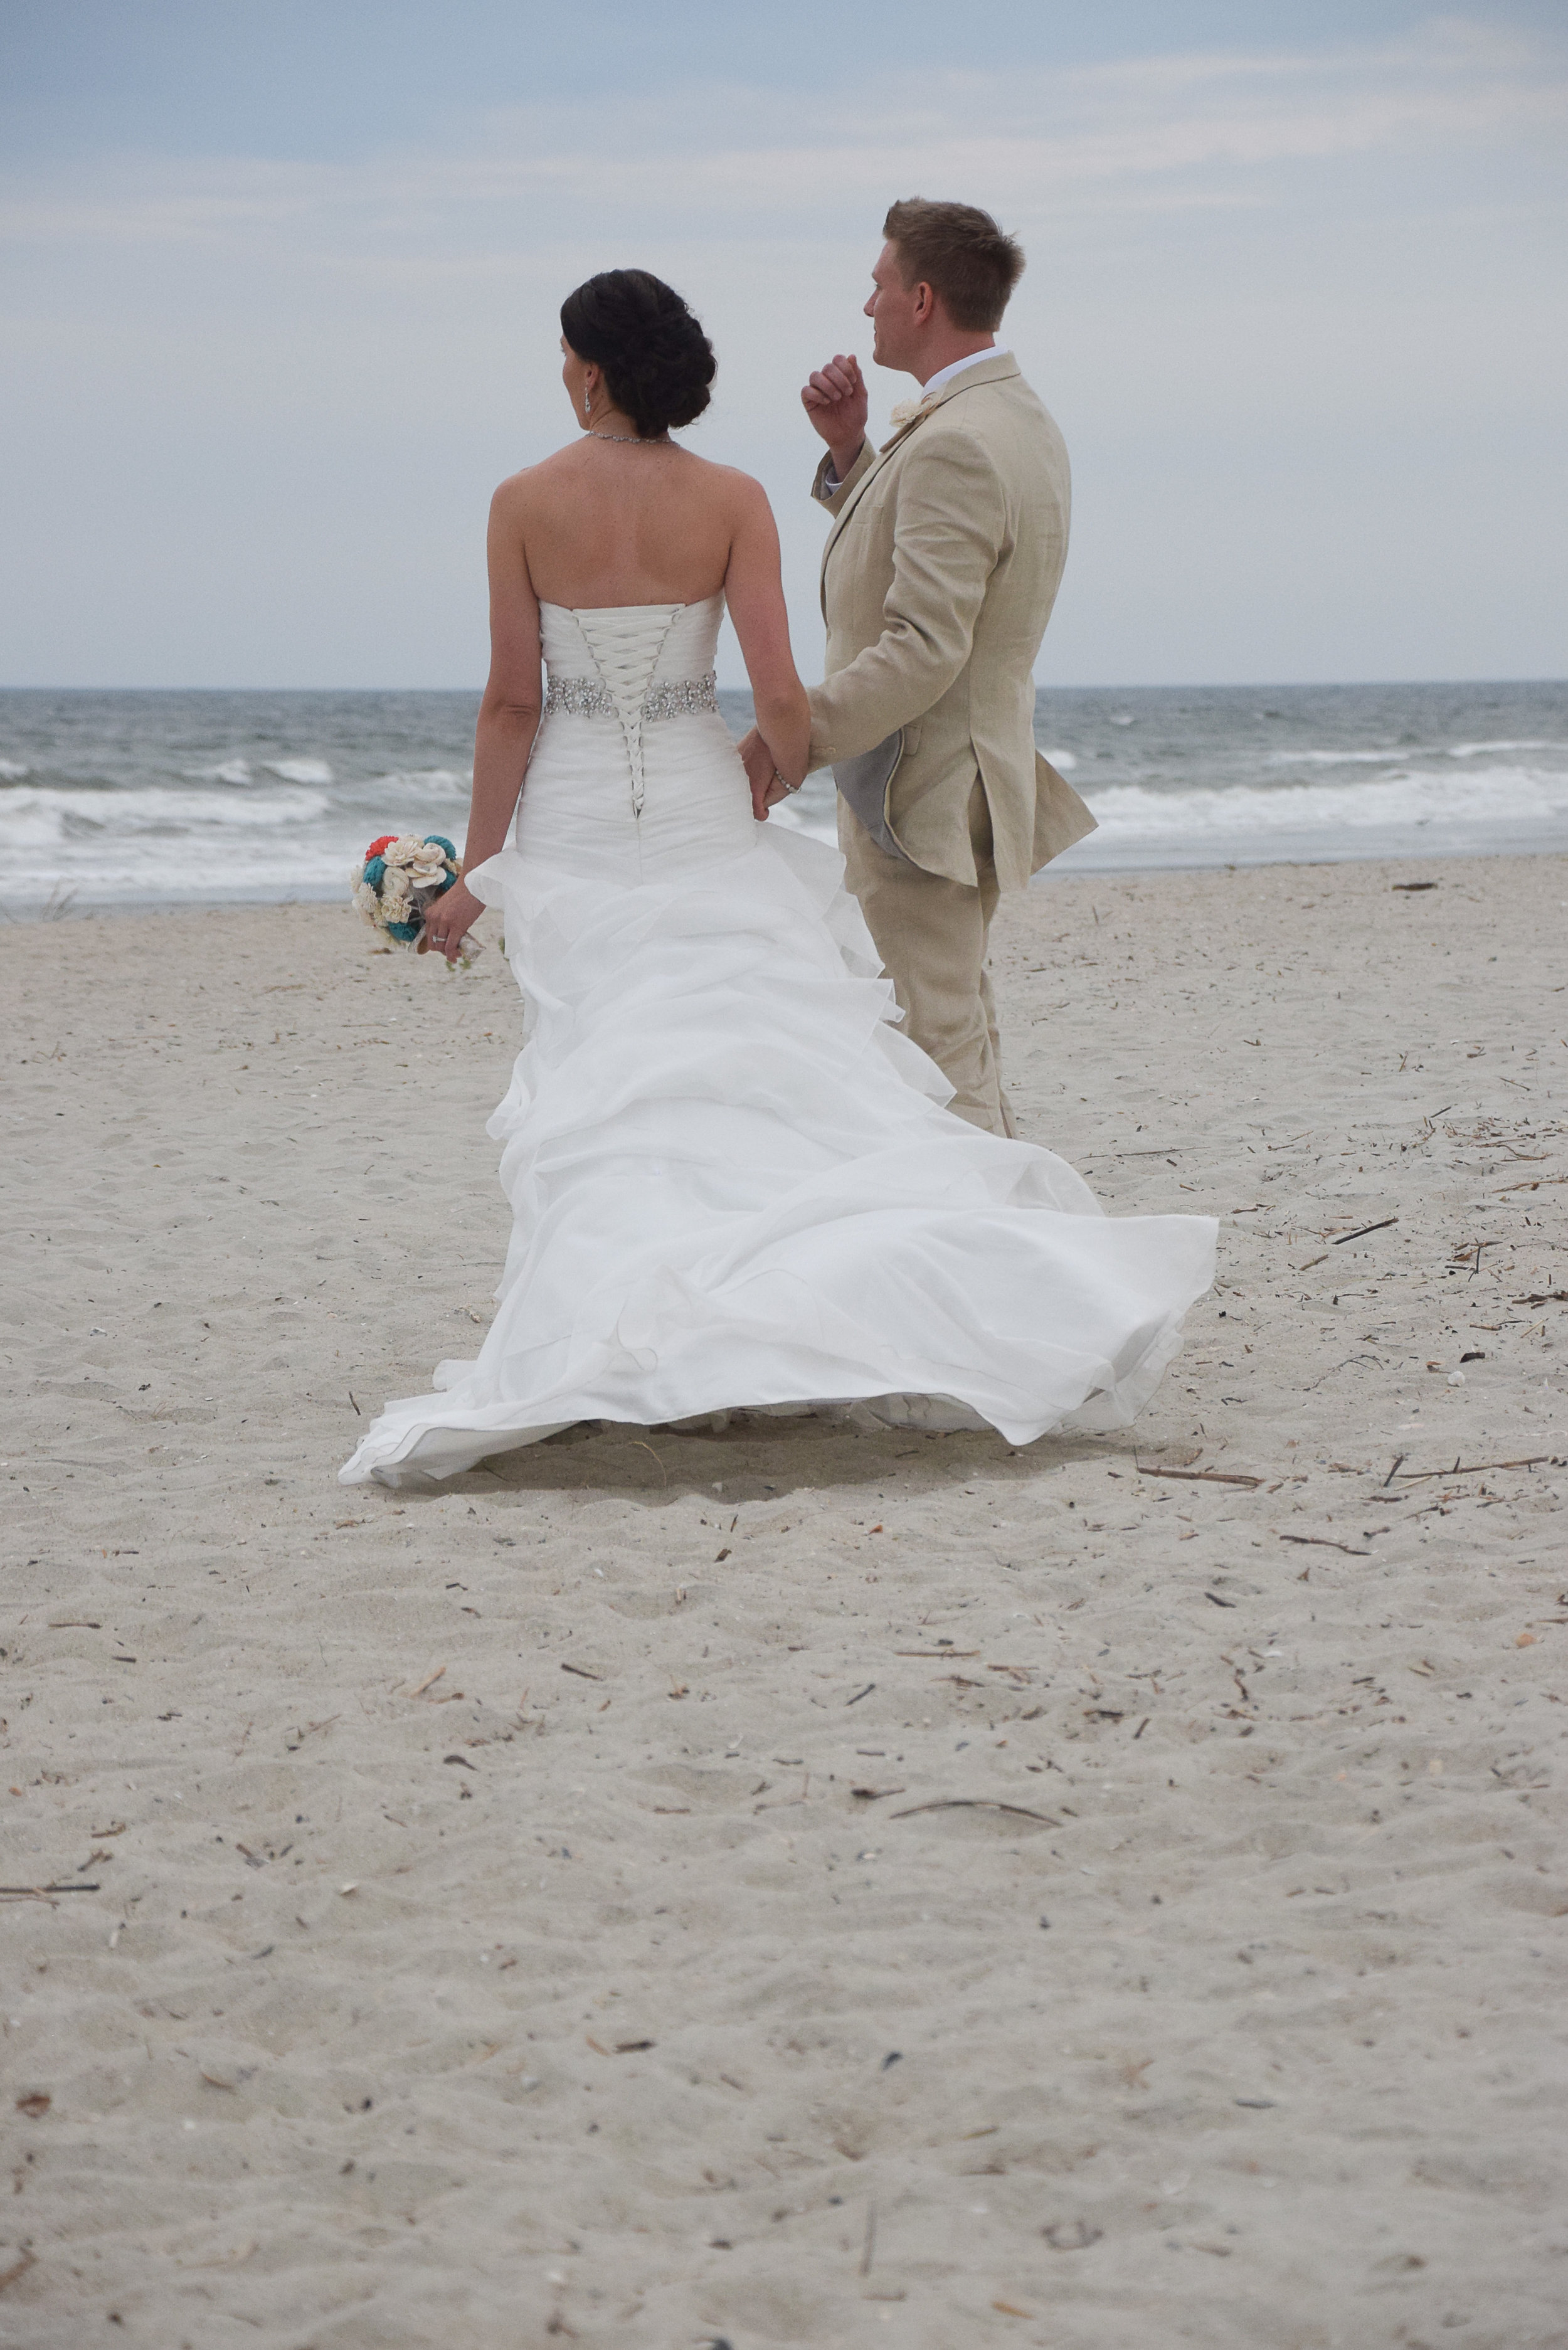 Bride and groom walking on the beach.